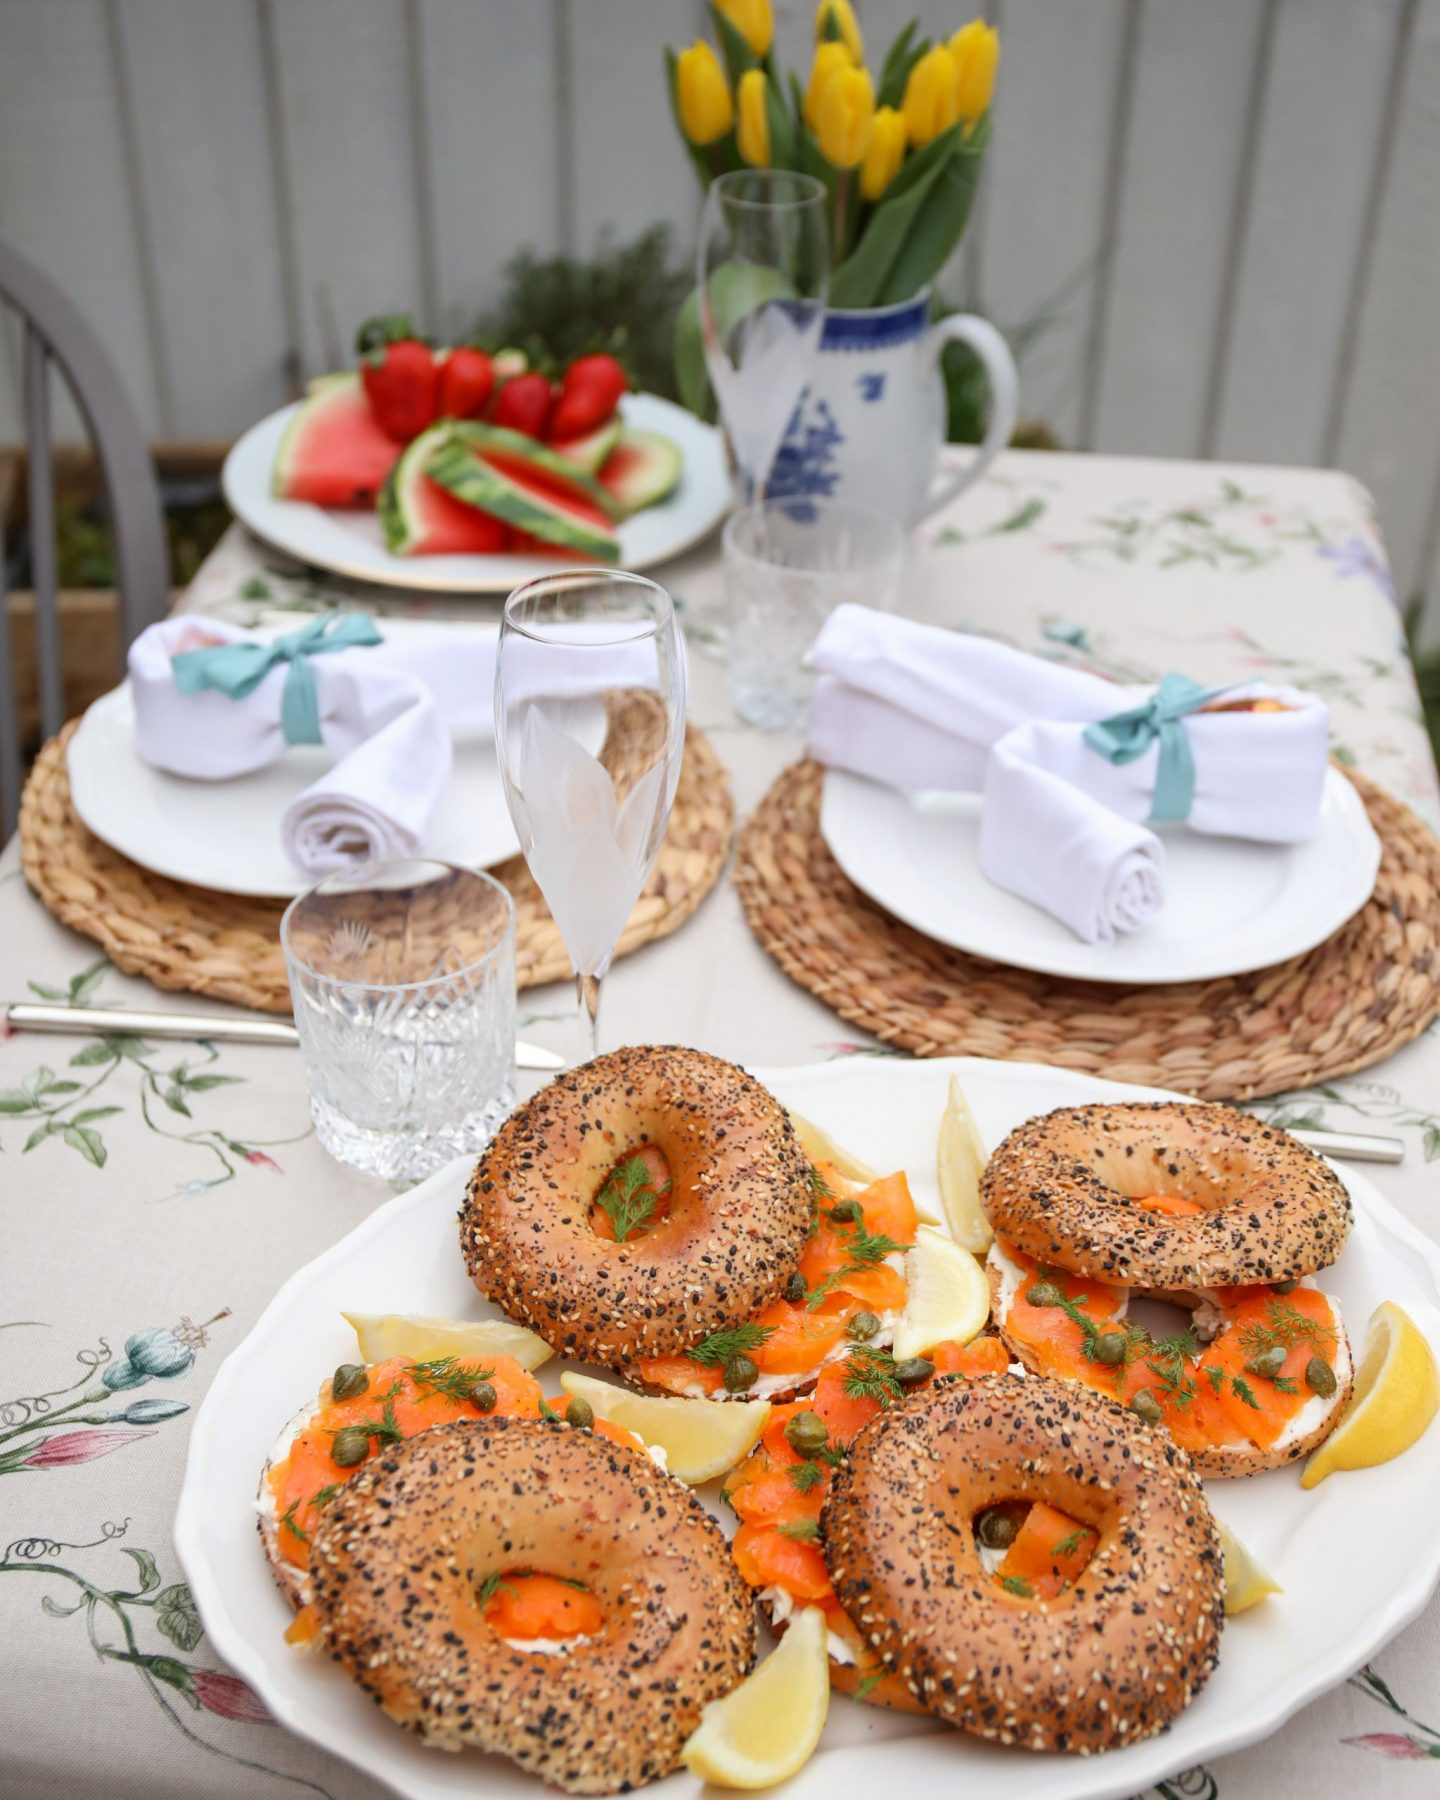 Vegan 'smoked salmon' Carrot and cream cheese bagels, Katie Heath KALANCHOE